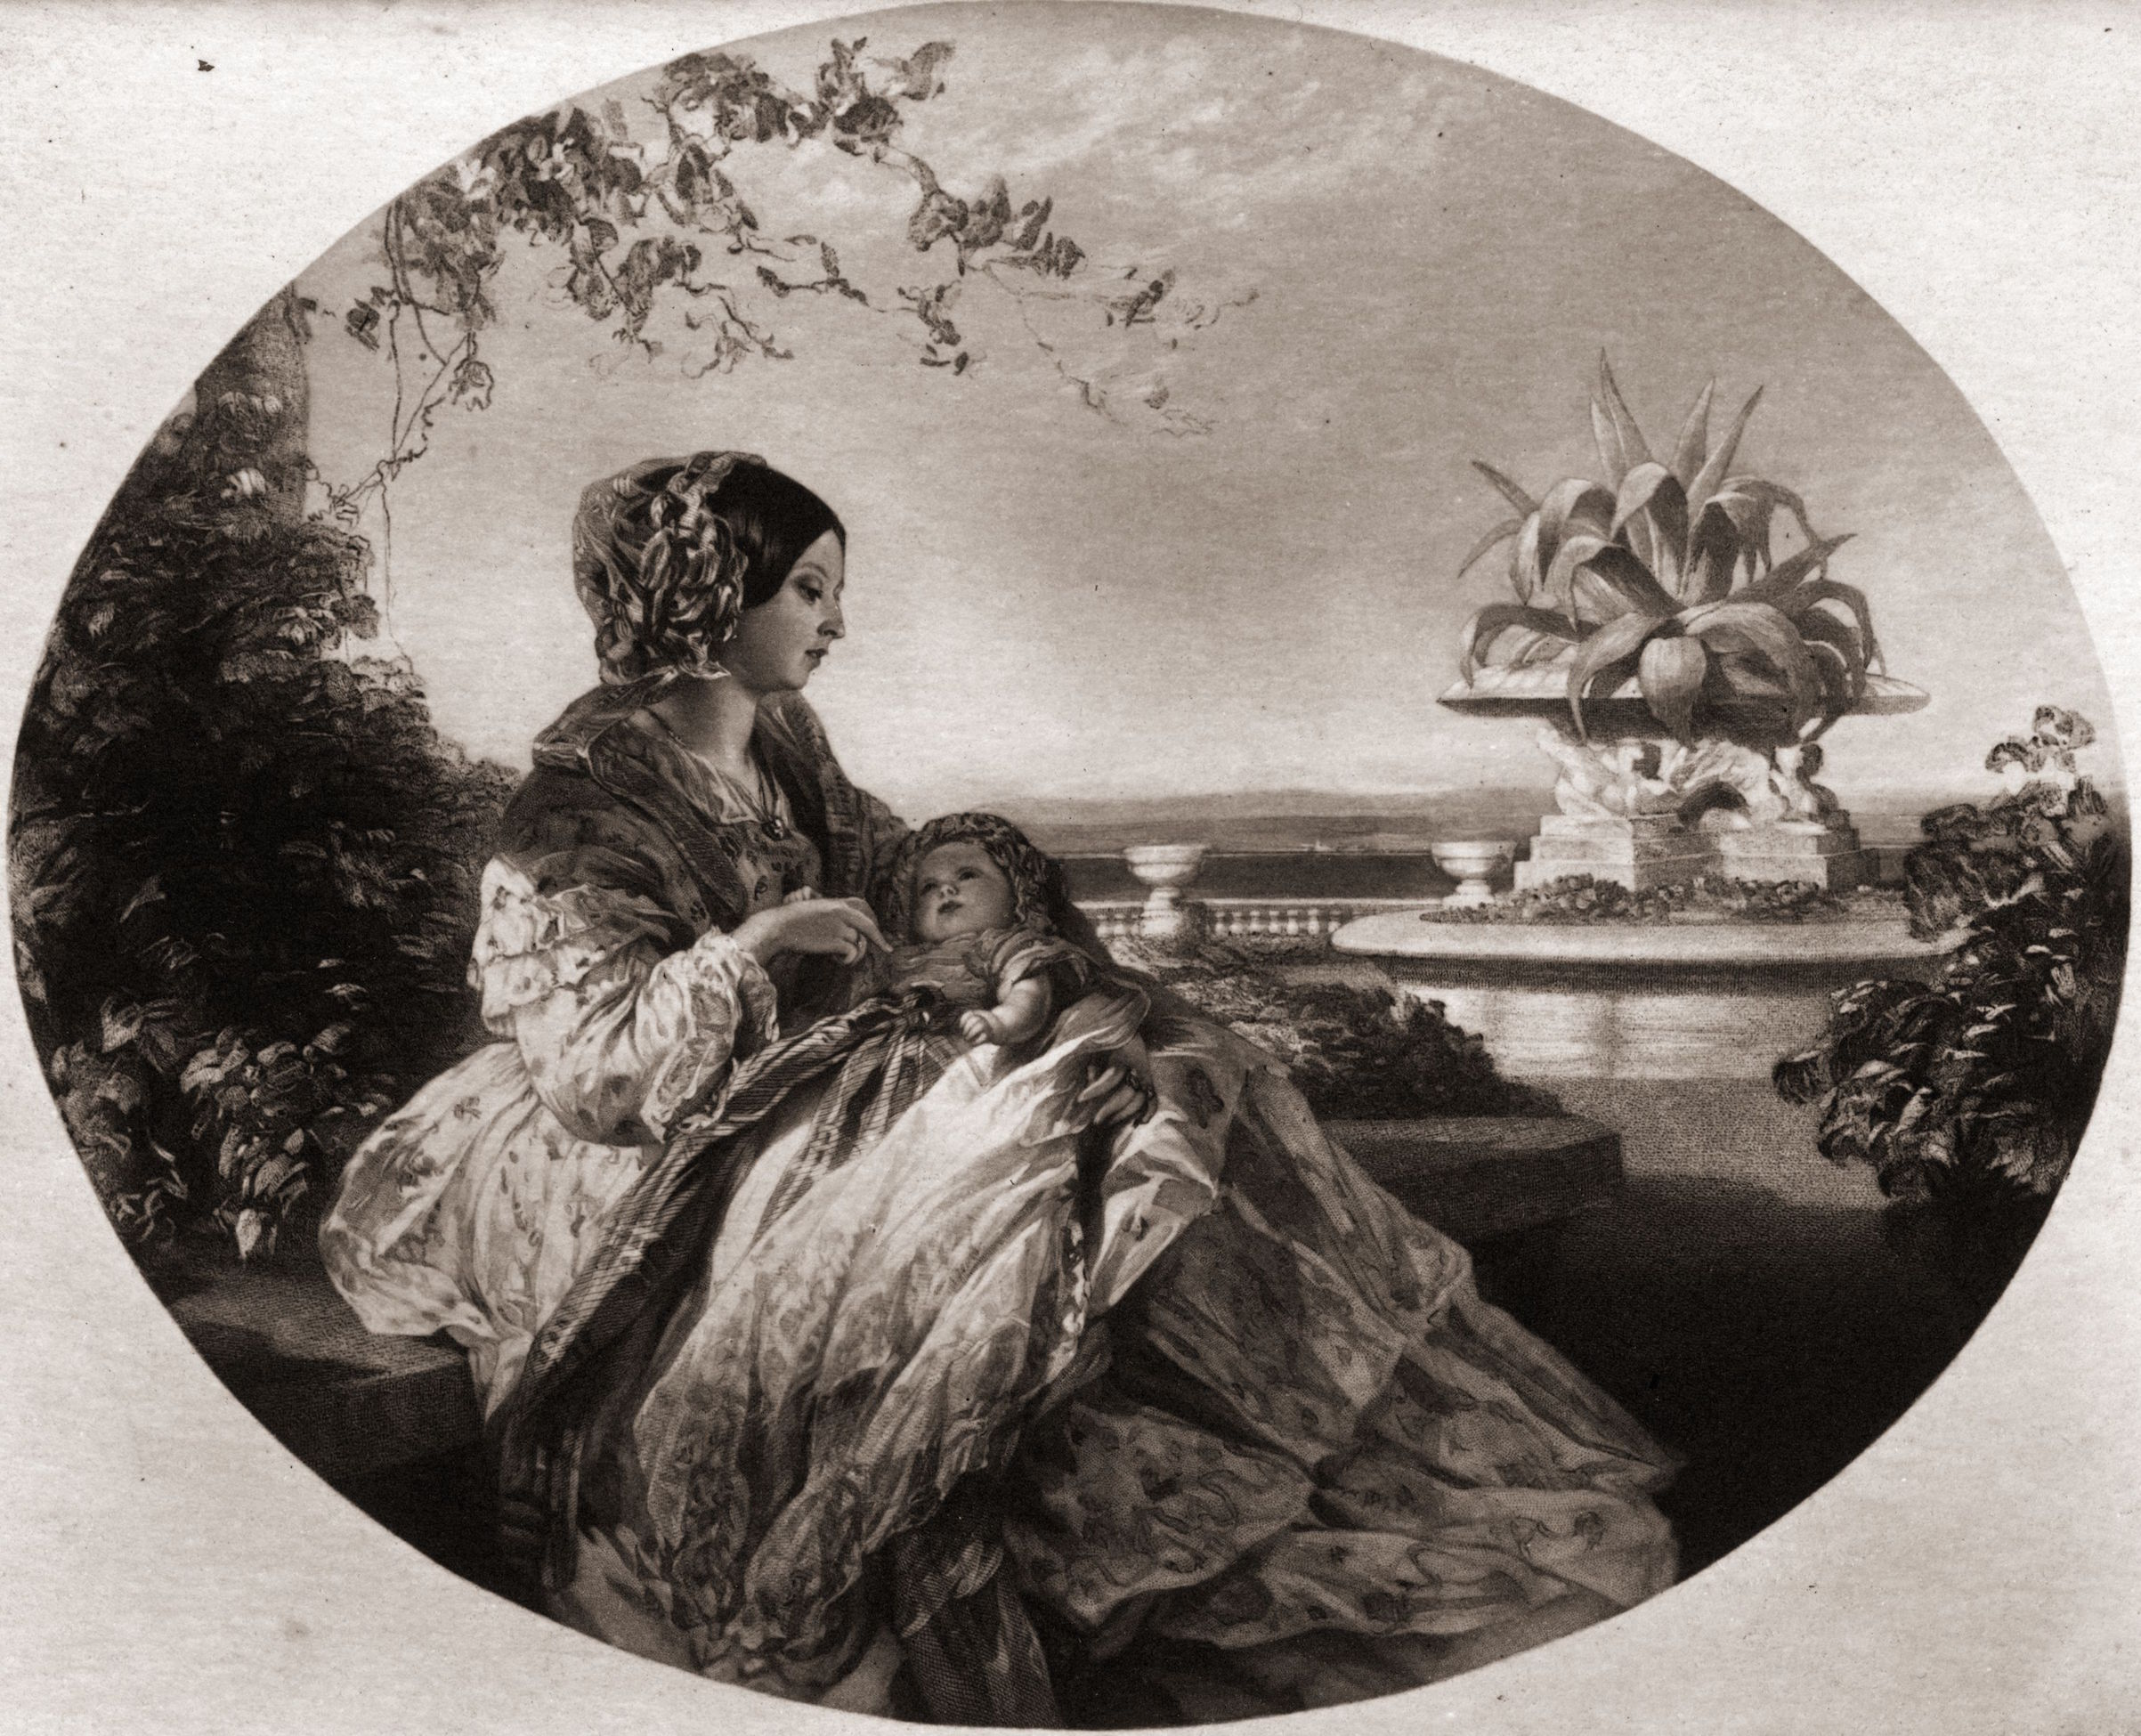 1852: Queen Victoria (1819 - 1901) with her third son Arthur William, Duke of Connaught (1850 - 1942), later Field Marshal Connaught. An engraving after Winterhalter.